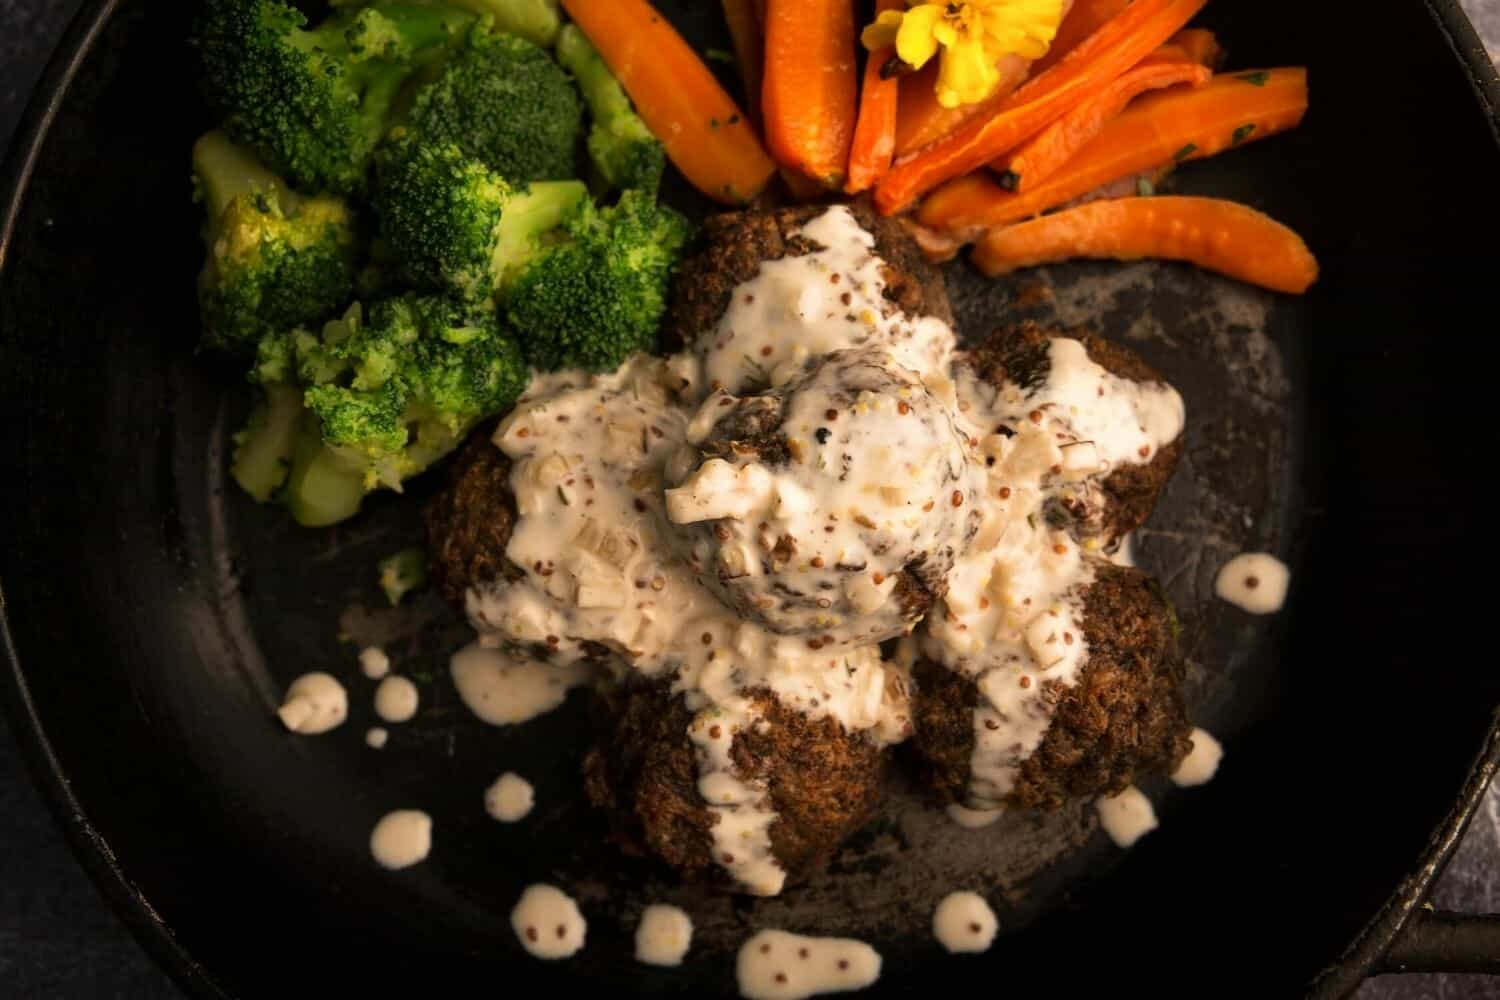 Mushroom & Butter Bean Balls with Twice Roasted Carrots & Broccoli